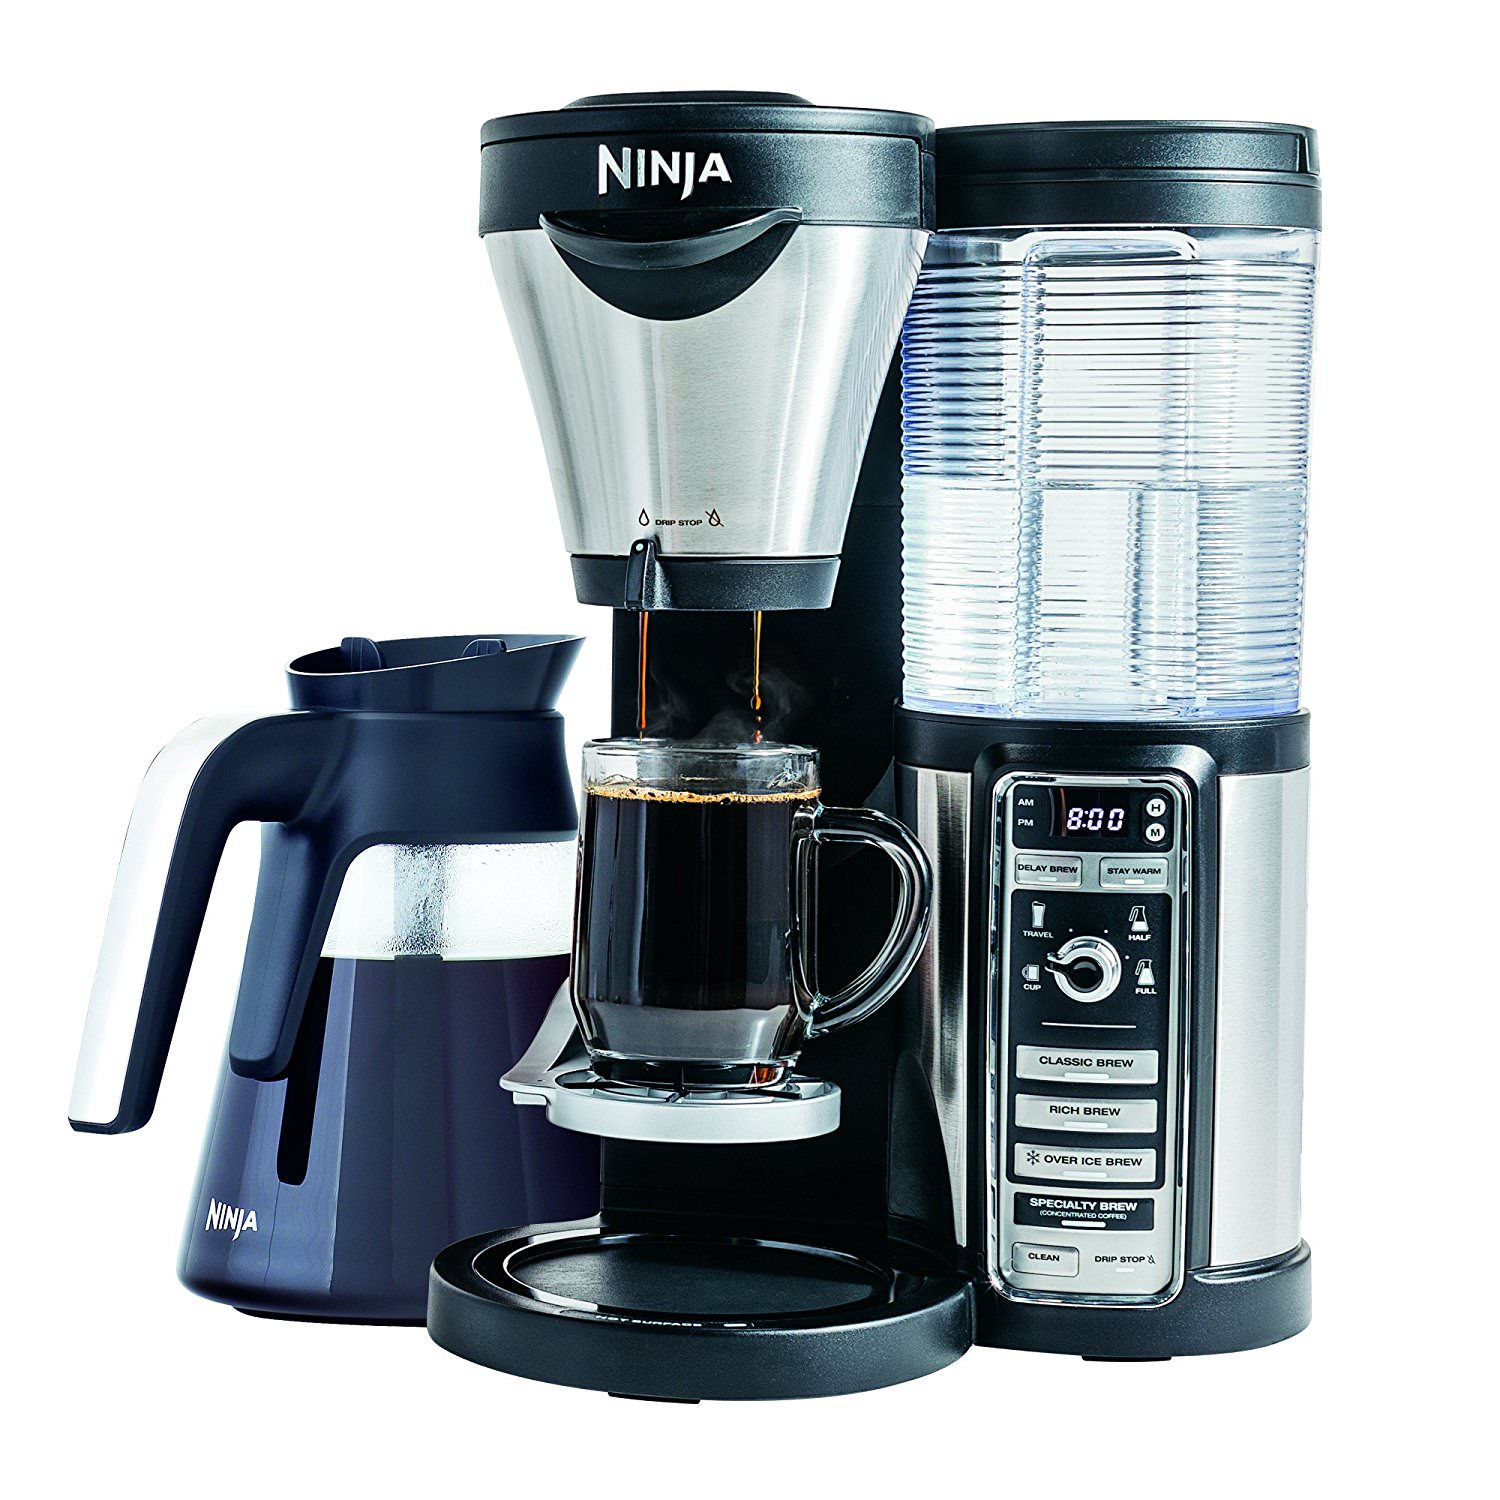 Ninja Coffee Maker for Hot/Iced Coffee with 4 Brew Sizes, Programmable Auto-iQ, Milk Frother, 43oz Glass Carafe, Tumbler and 100 Recipes CF082 (Certified Refurbished)